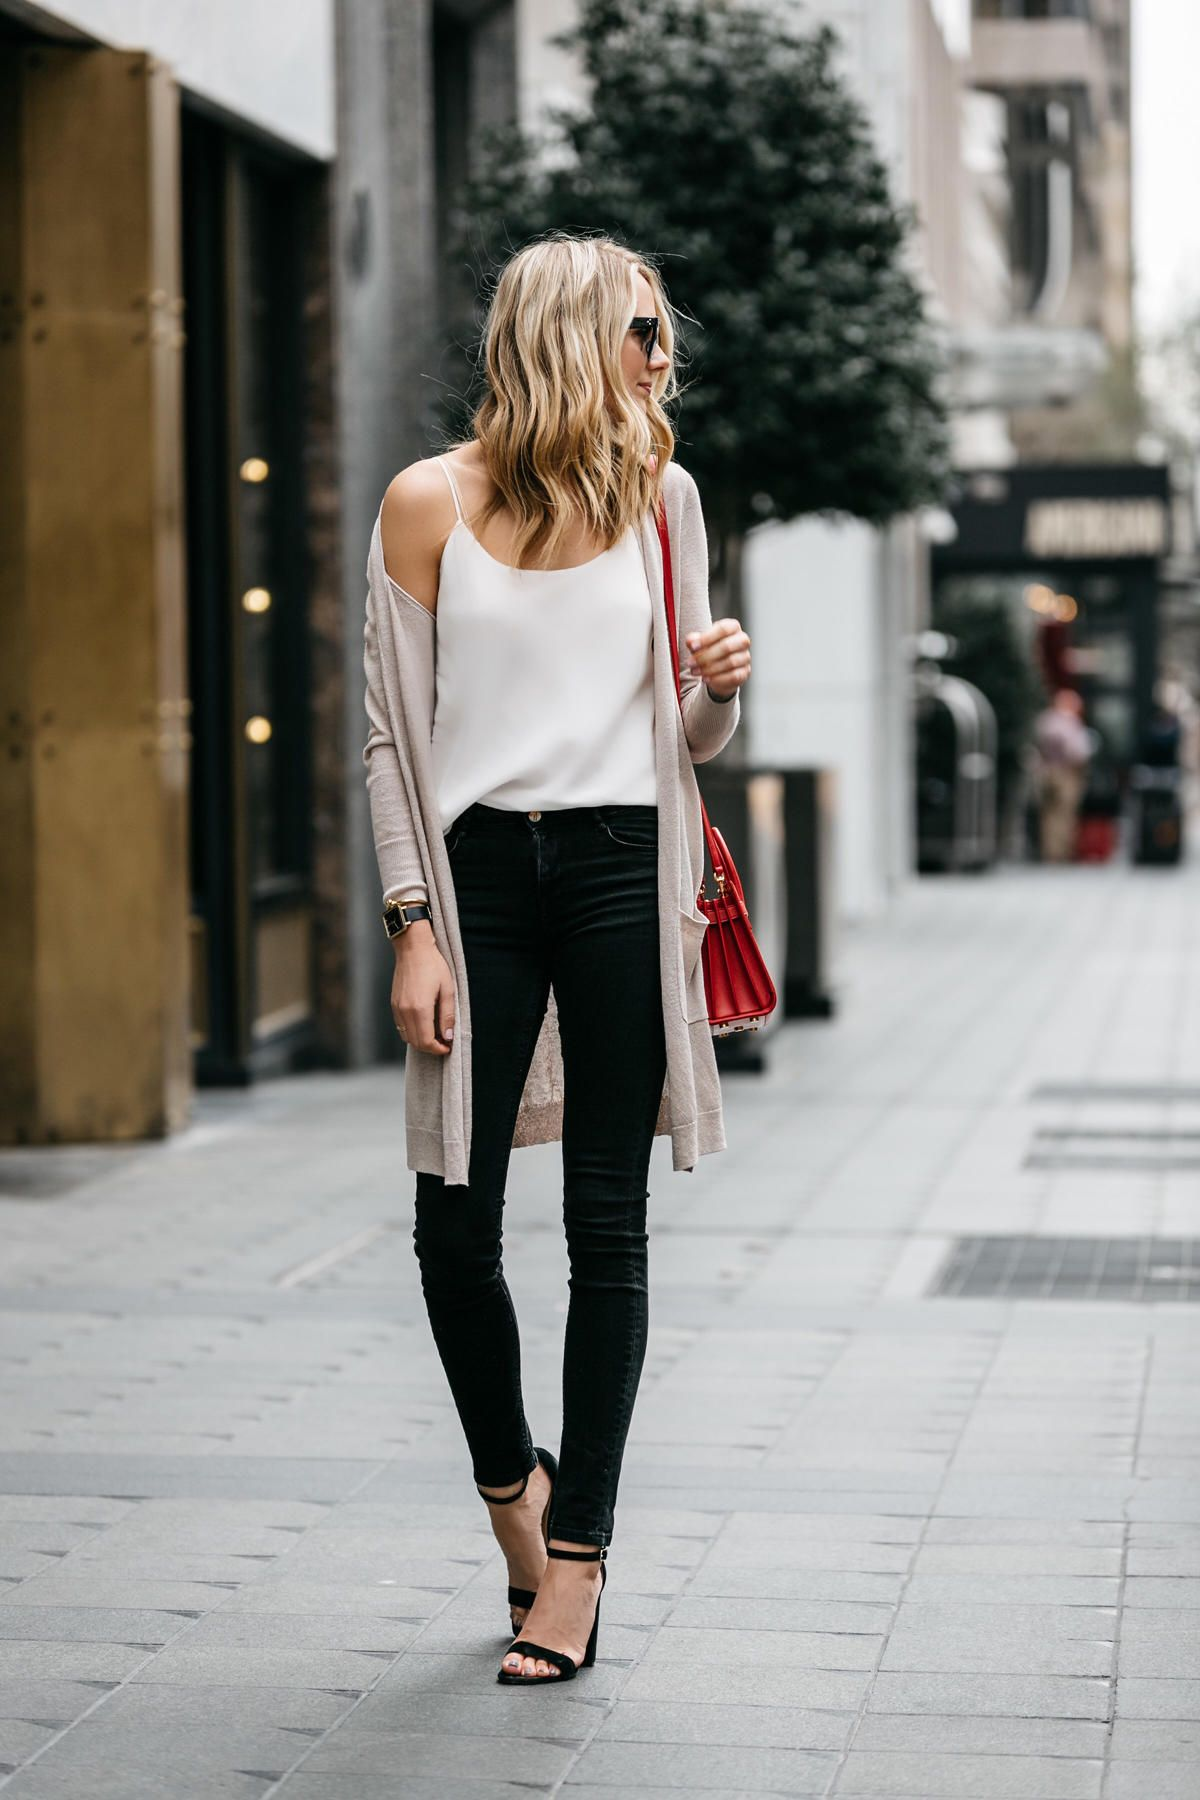 Long Cardigan Outfit Inspiration - An Unblurred Lady  Spring